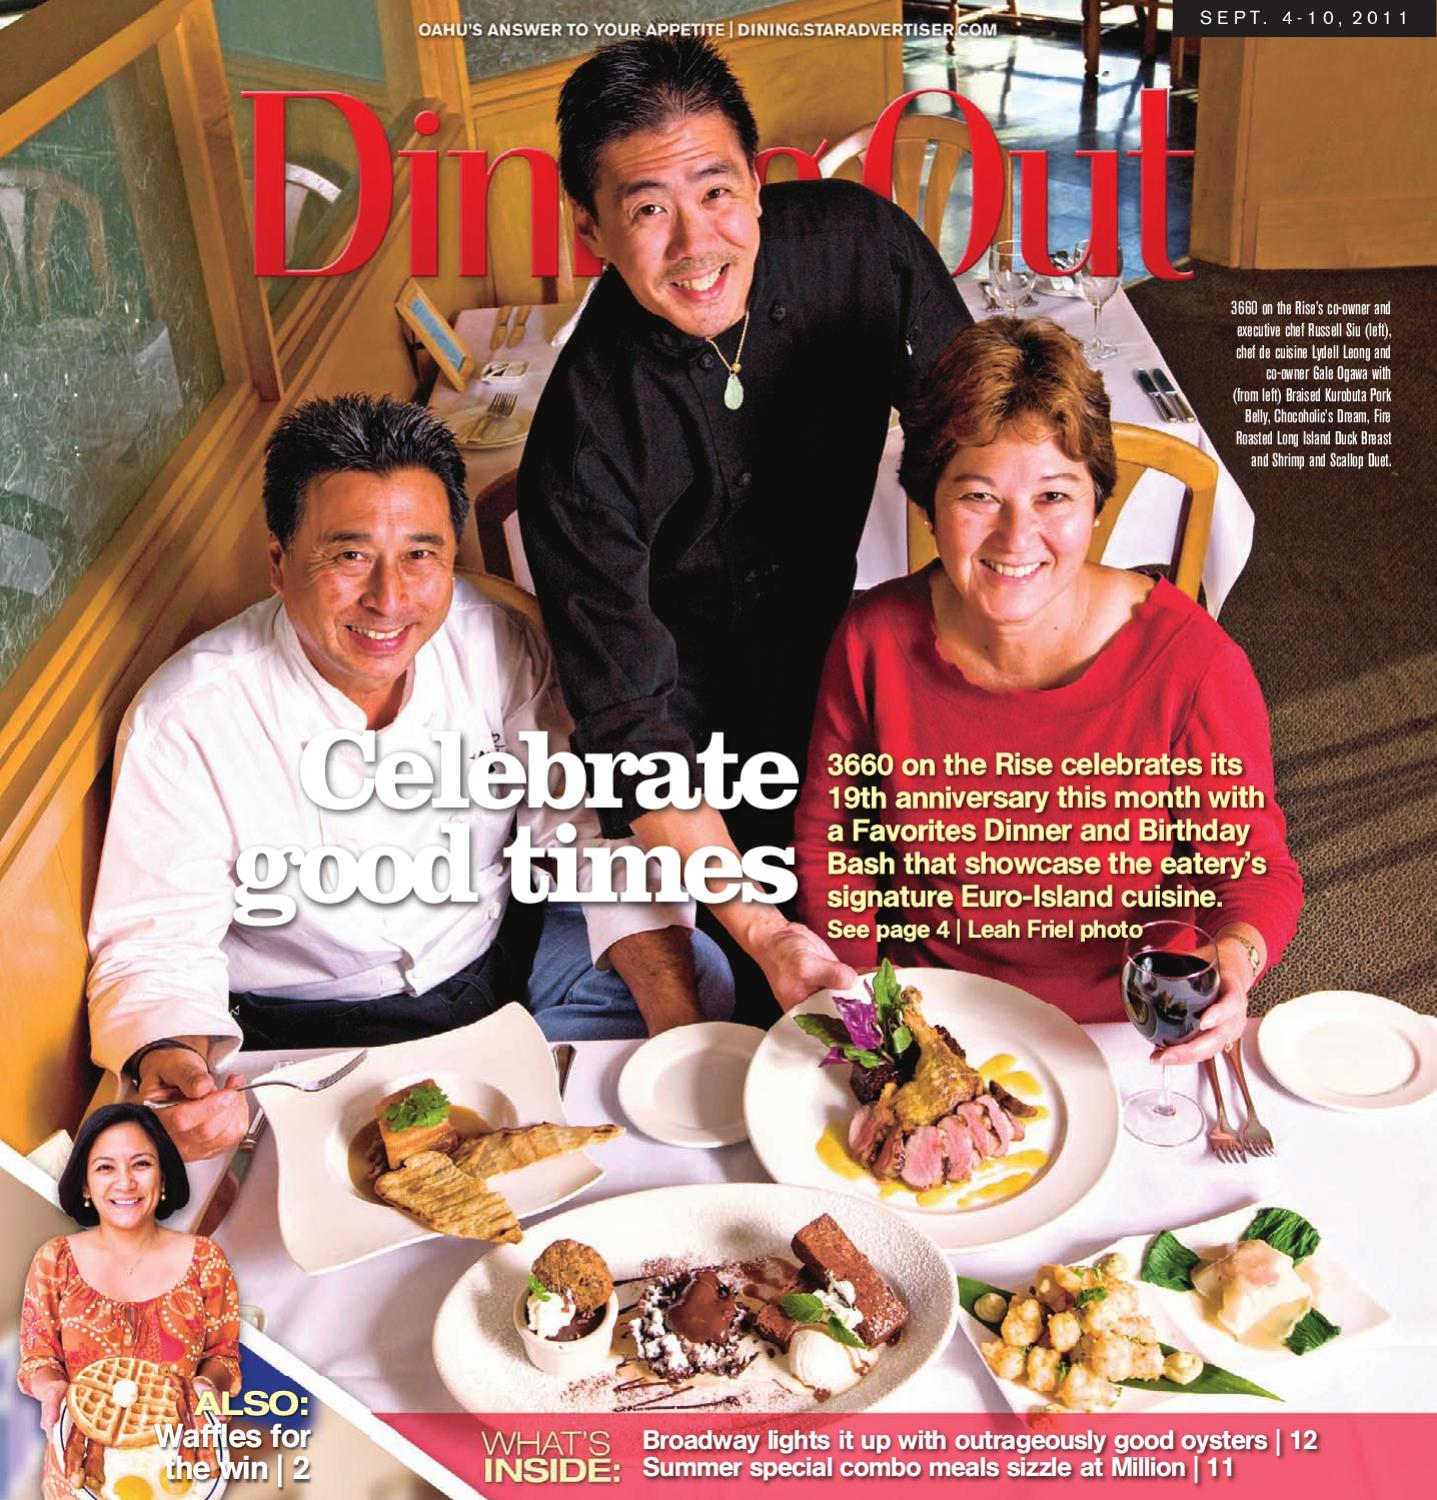 Hawaii DiningOut Sep 4, 2011 By Oahu Publications, Inc